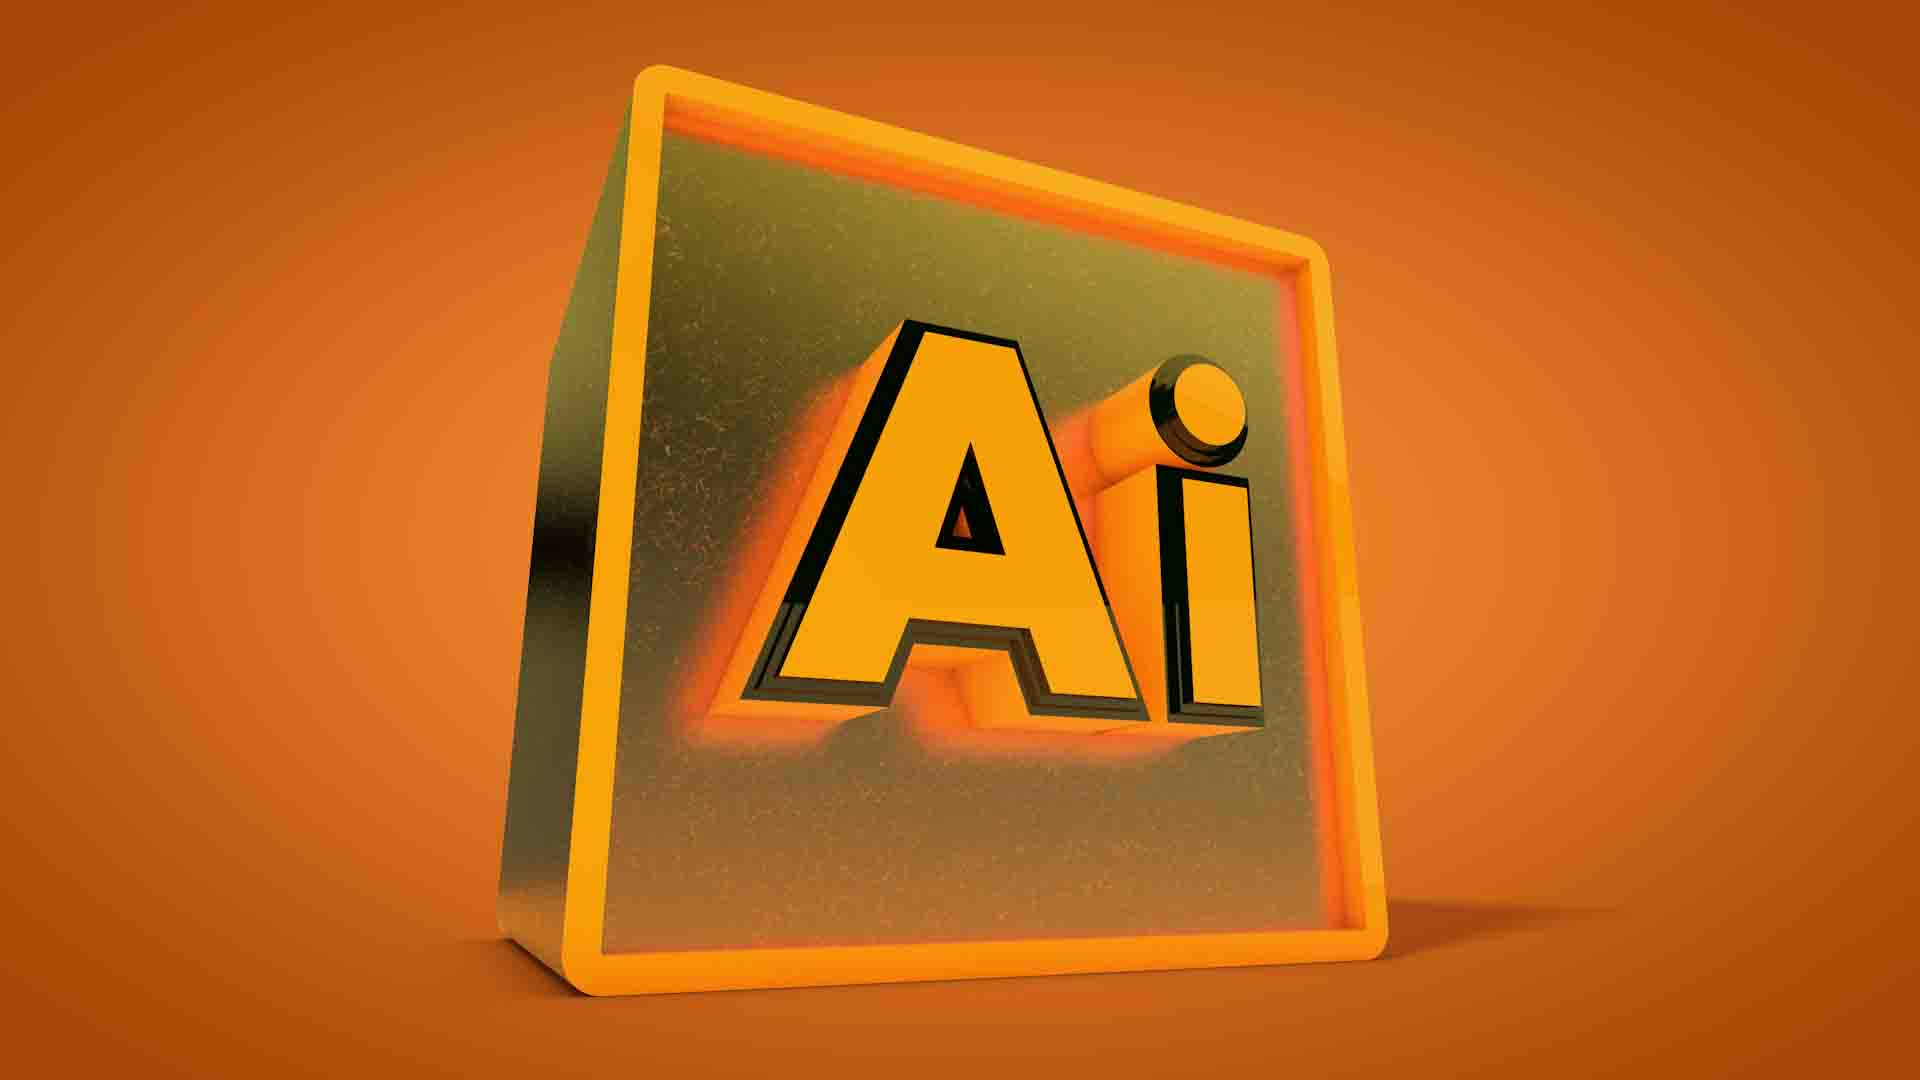 Adobe Illustrator CS6 2020 Crack